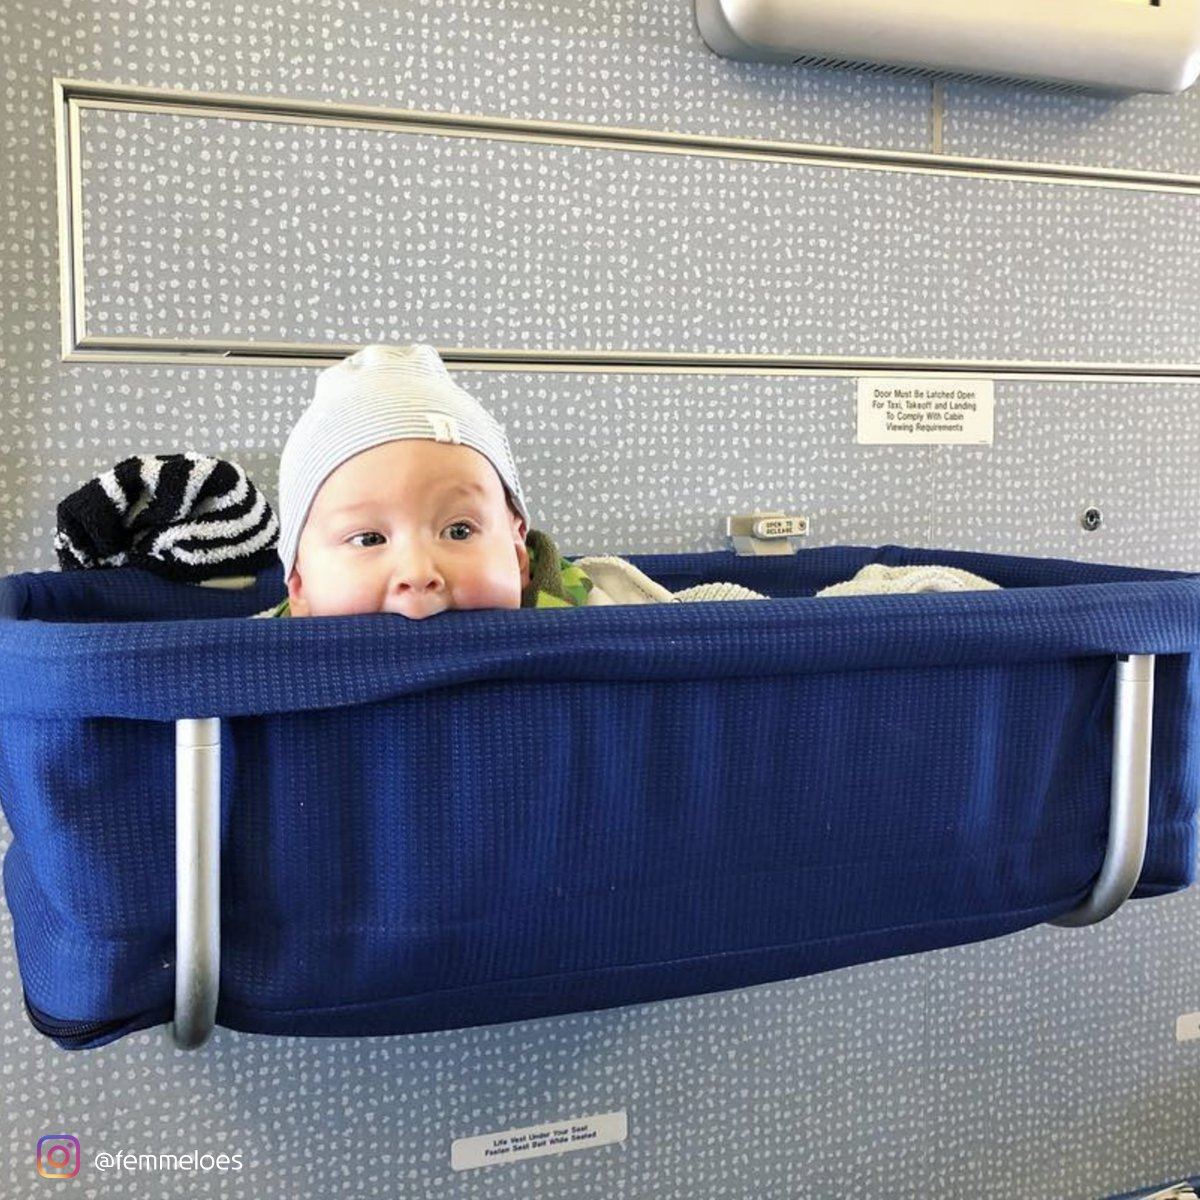 Klm On Twitter We Hope You Had A Wonderful First Flight Baby Valentijn